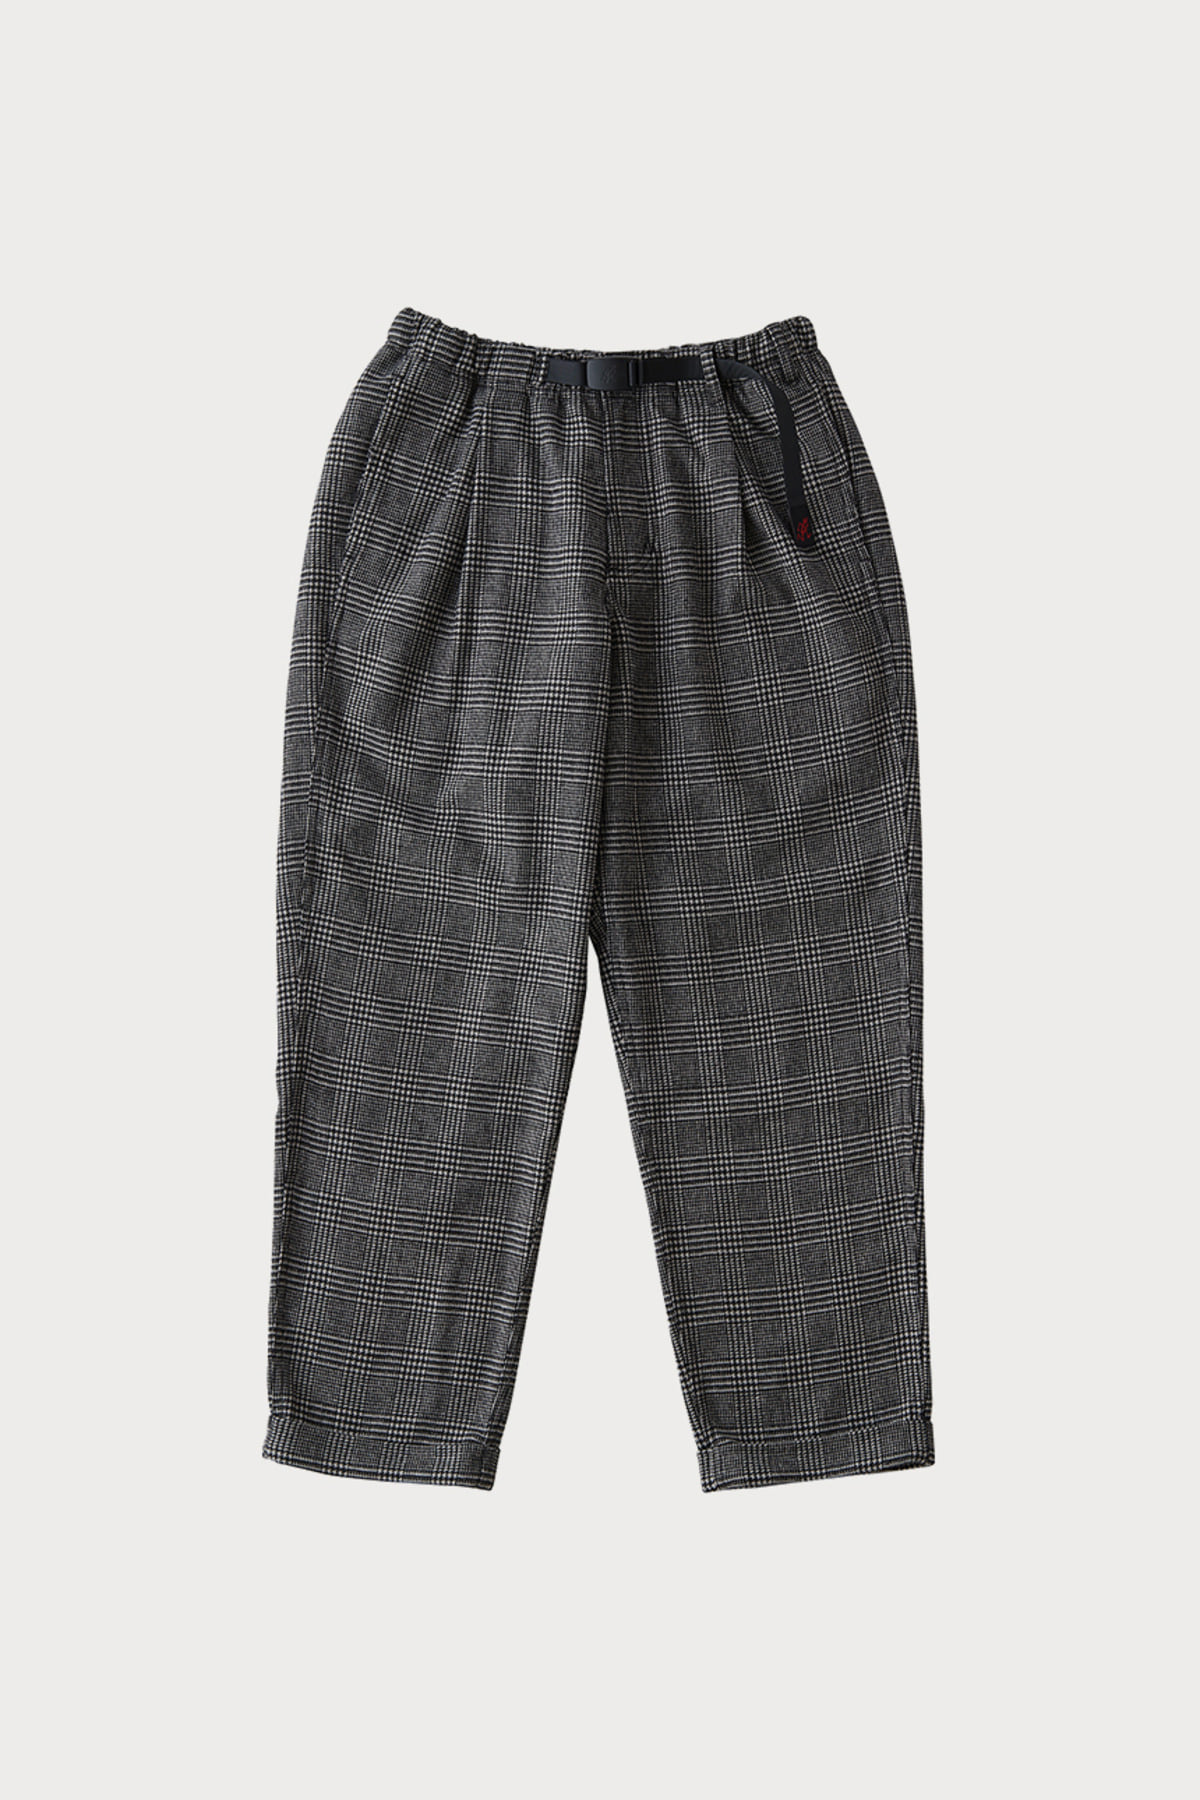 WOOL BLEND TUCK TAPERED PANTS HOUNDSTOOTH PATTERN